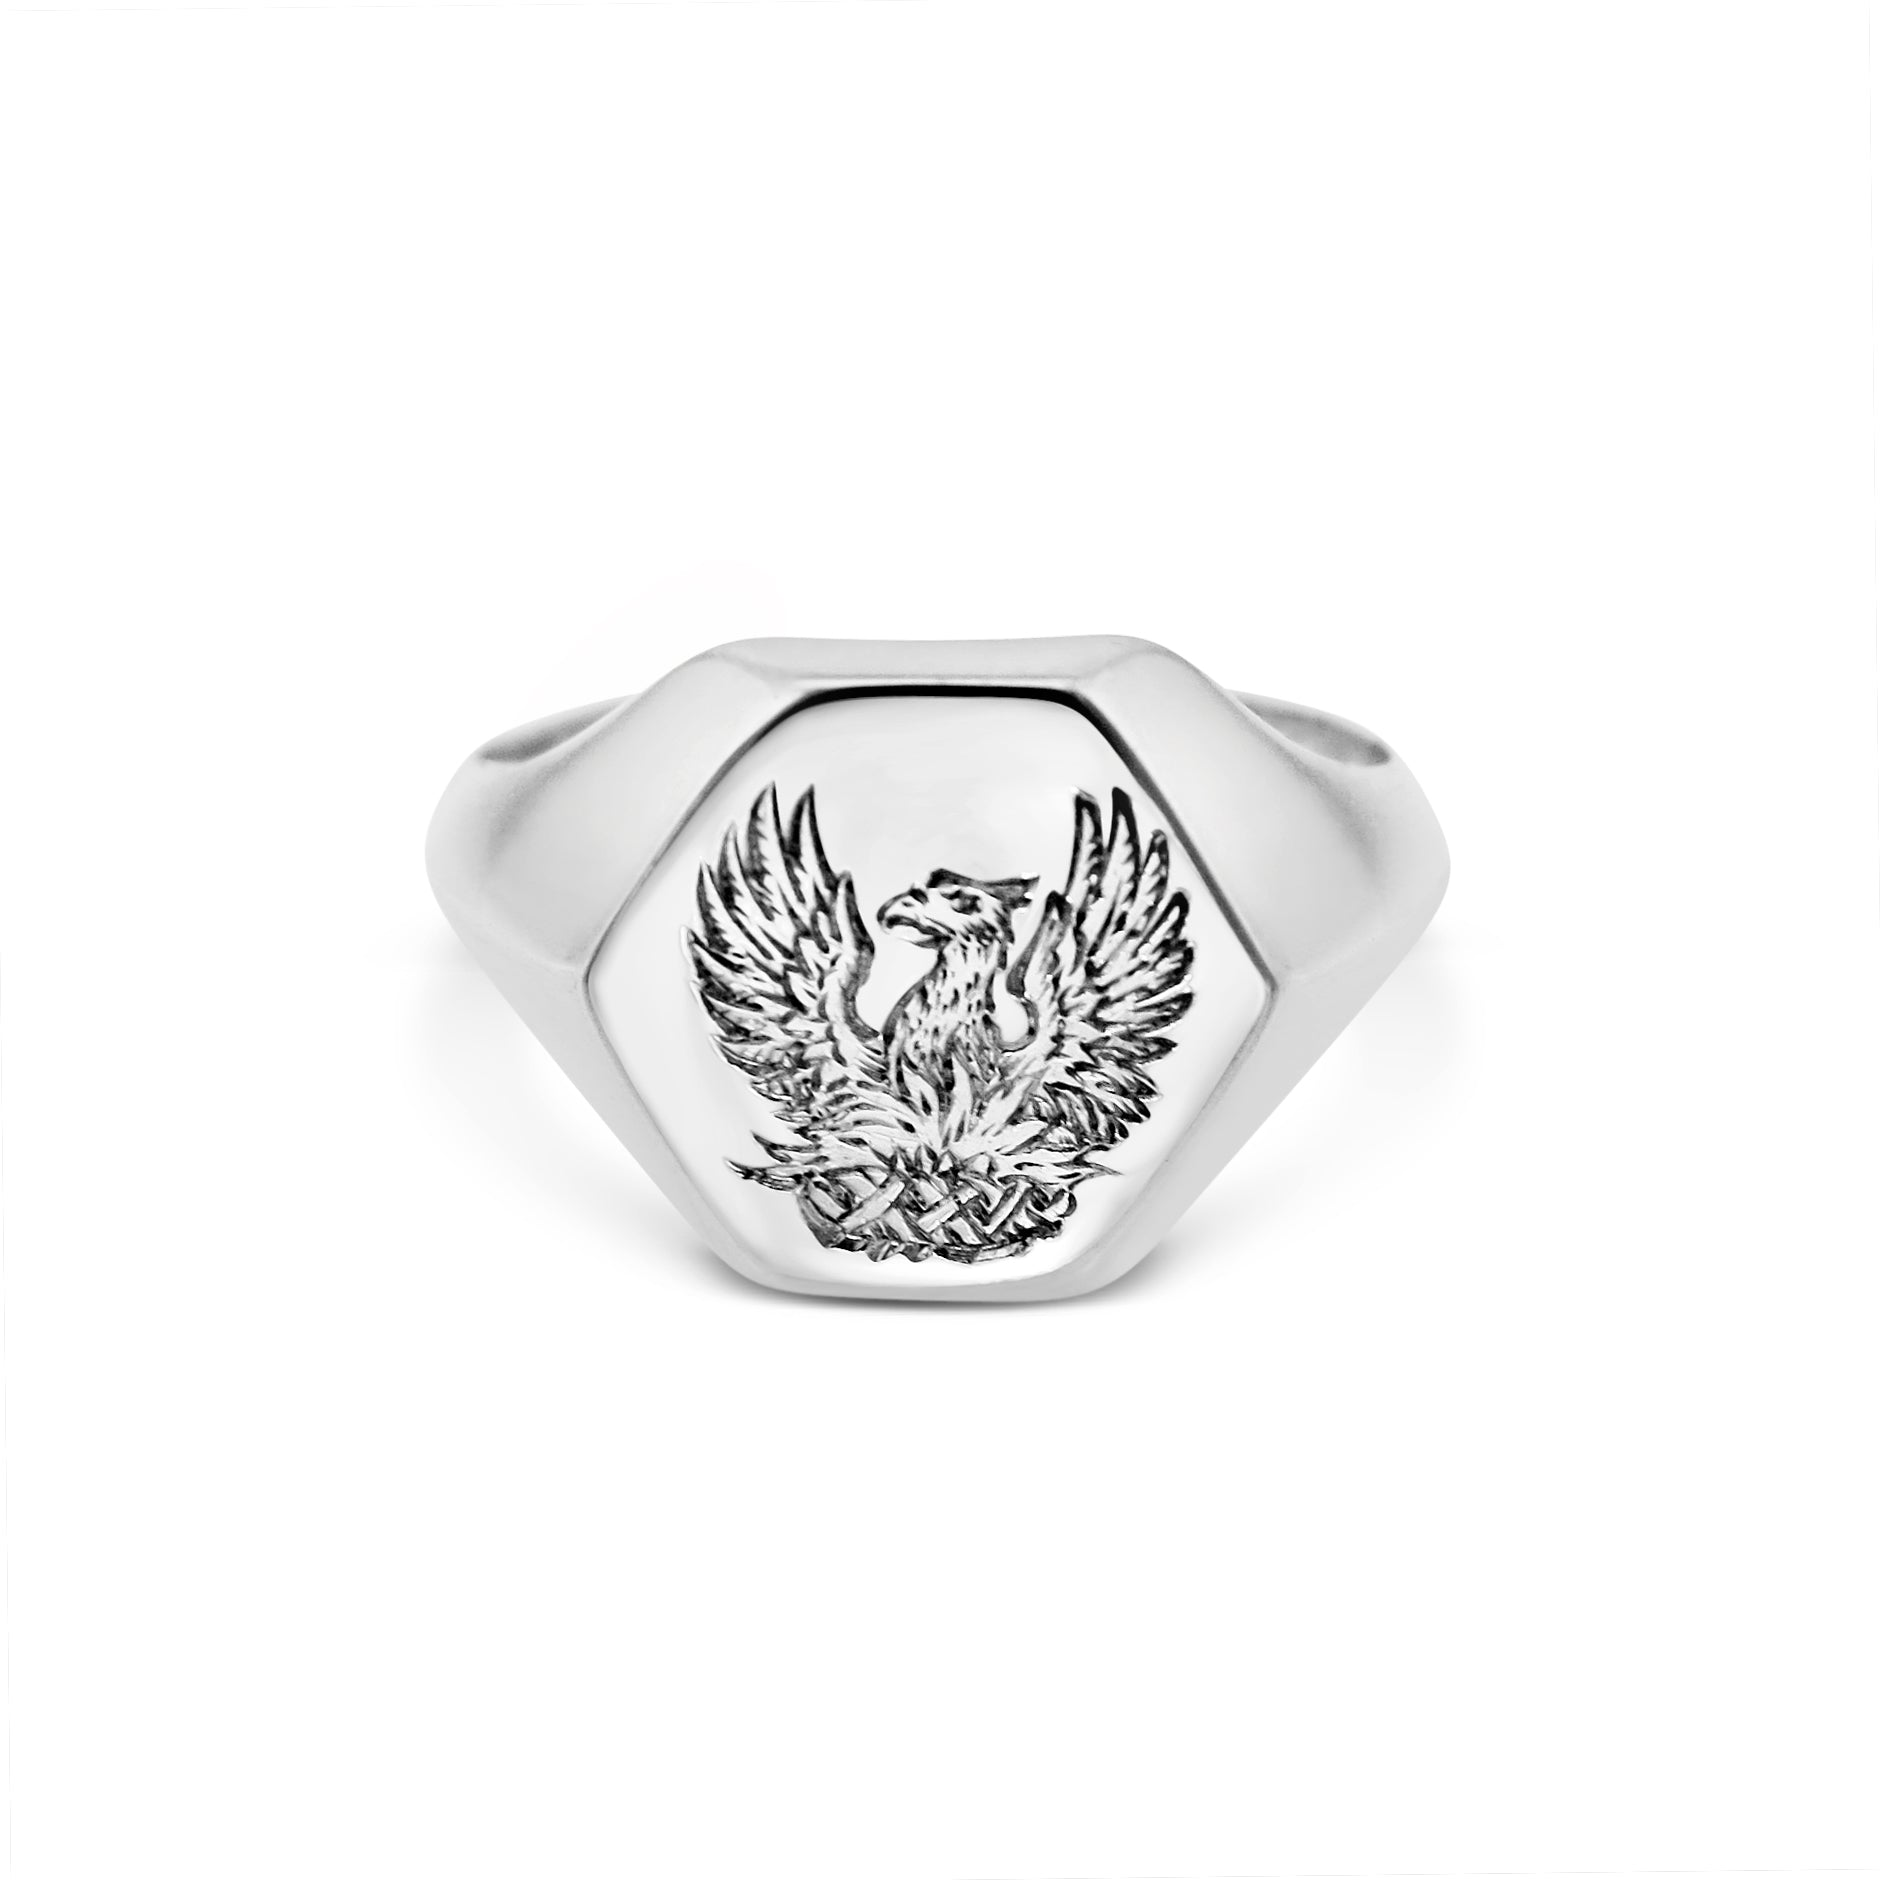 18ct White Gold Hexagon Signet Ring with Hand Engraving